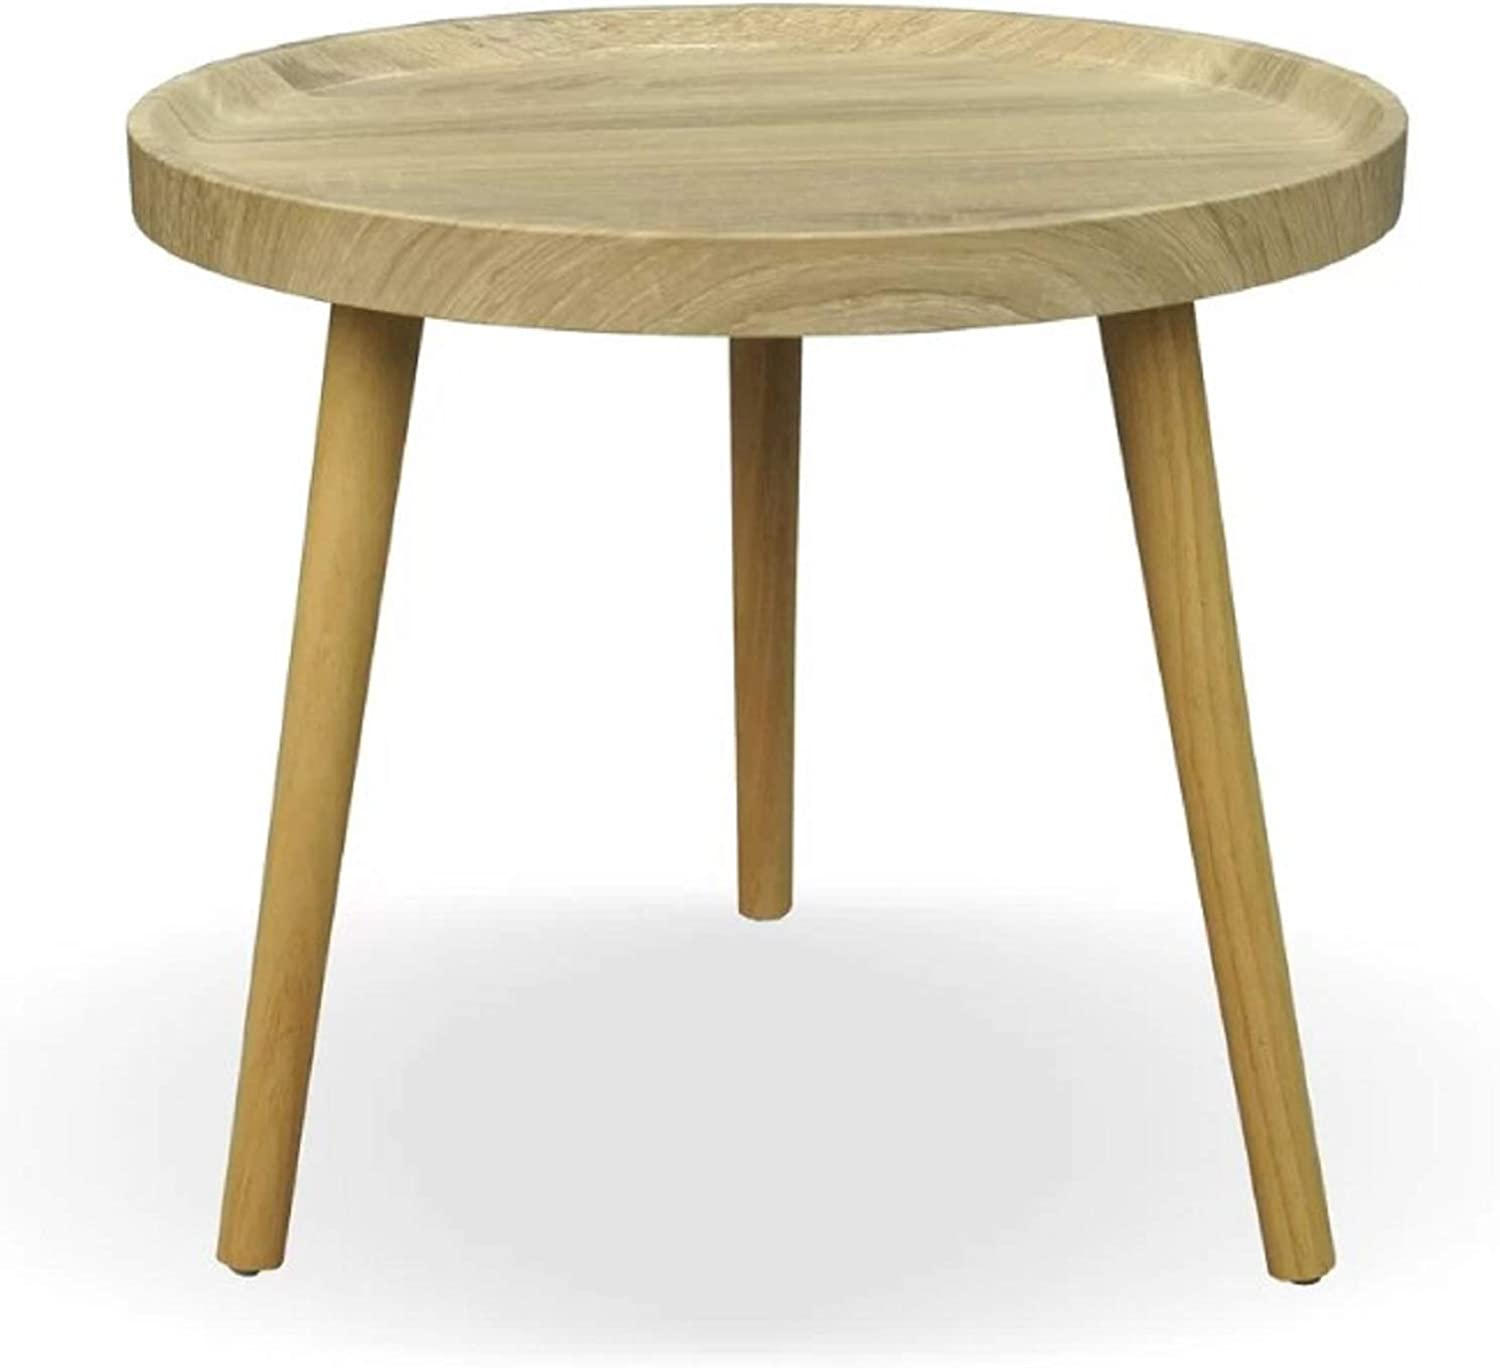 Small End Table. Oak Wood Finish Balcom Traditional Small End Table